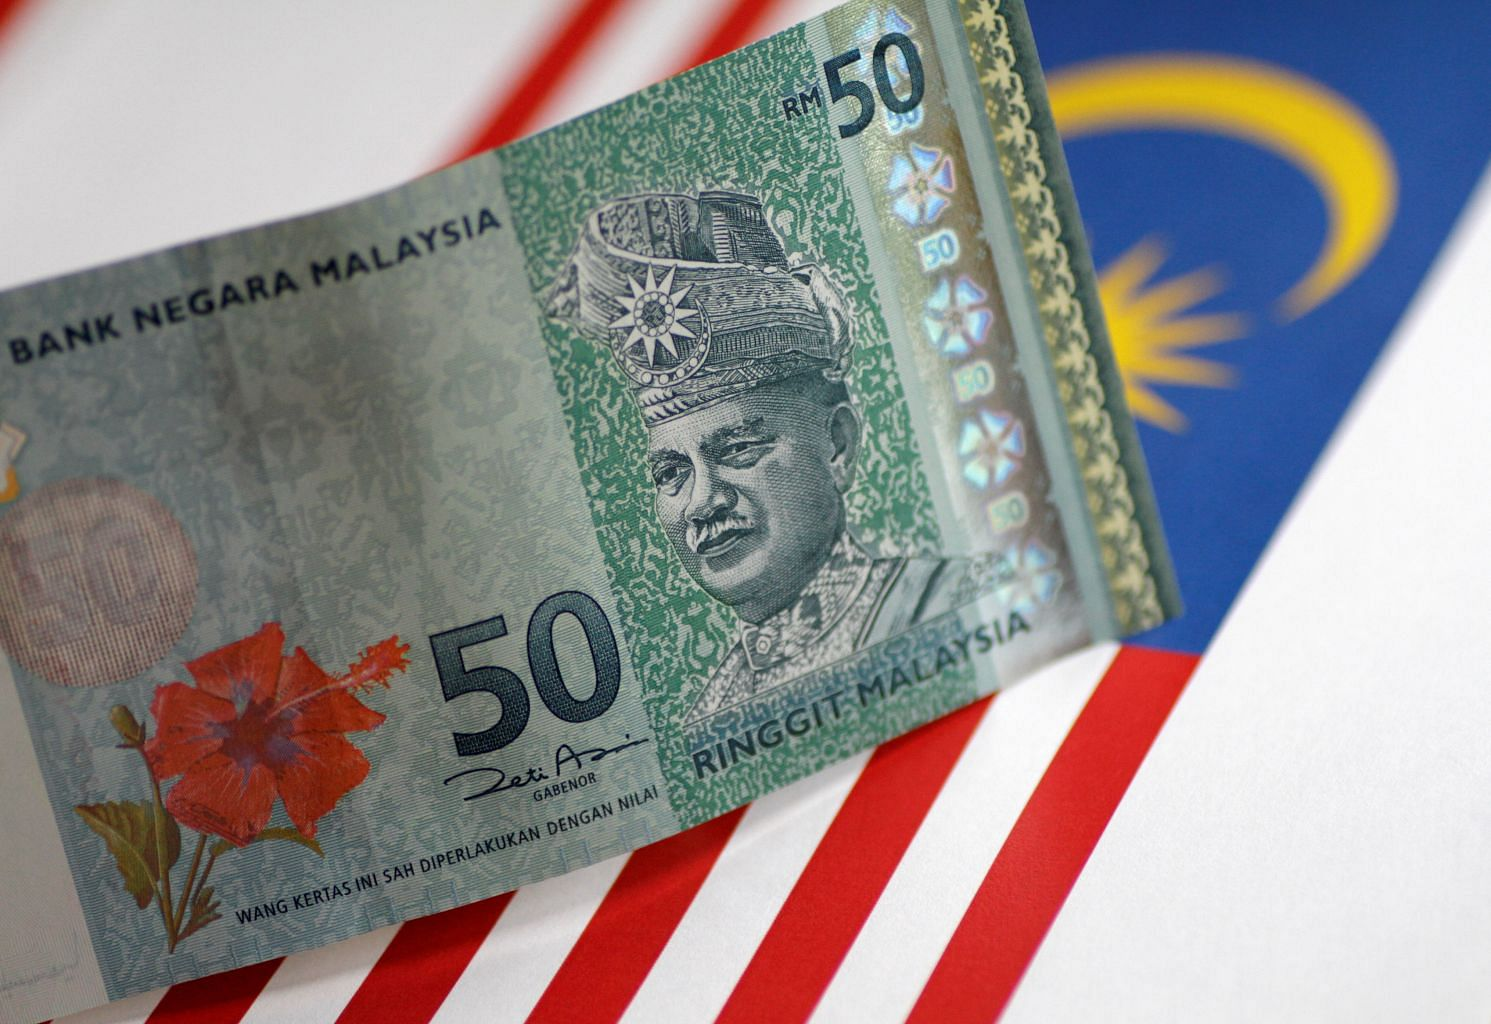 Malaysia Stock Market Ringgit Bounce Back From Post Election Jitters Removal Of Gst Still Among Worries Companies Markets News Top Stories The Straits Times